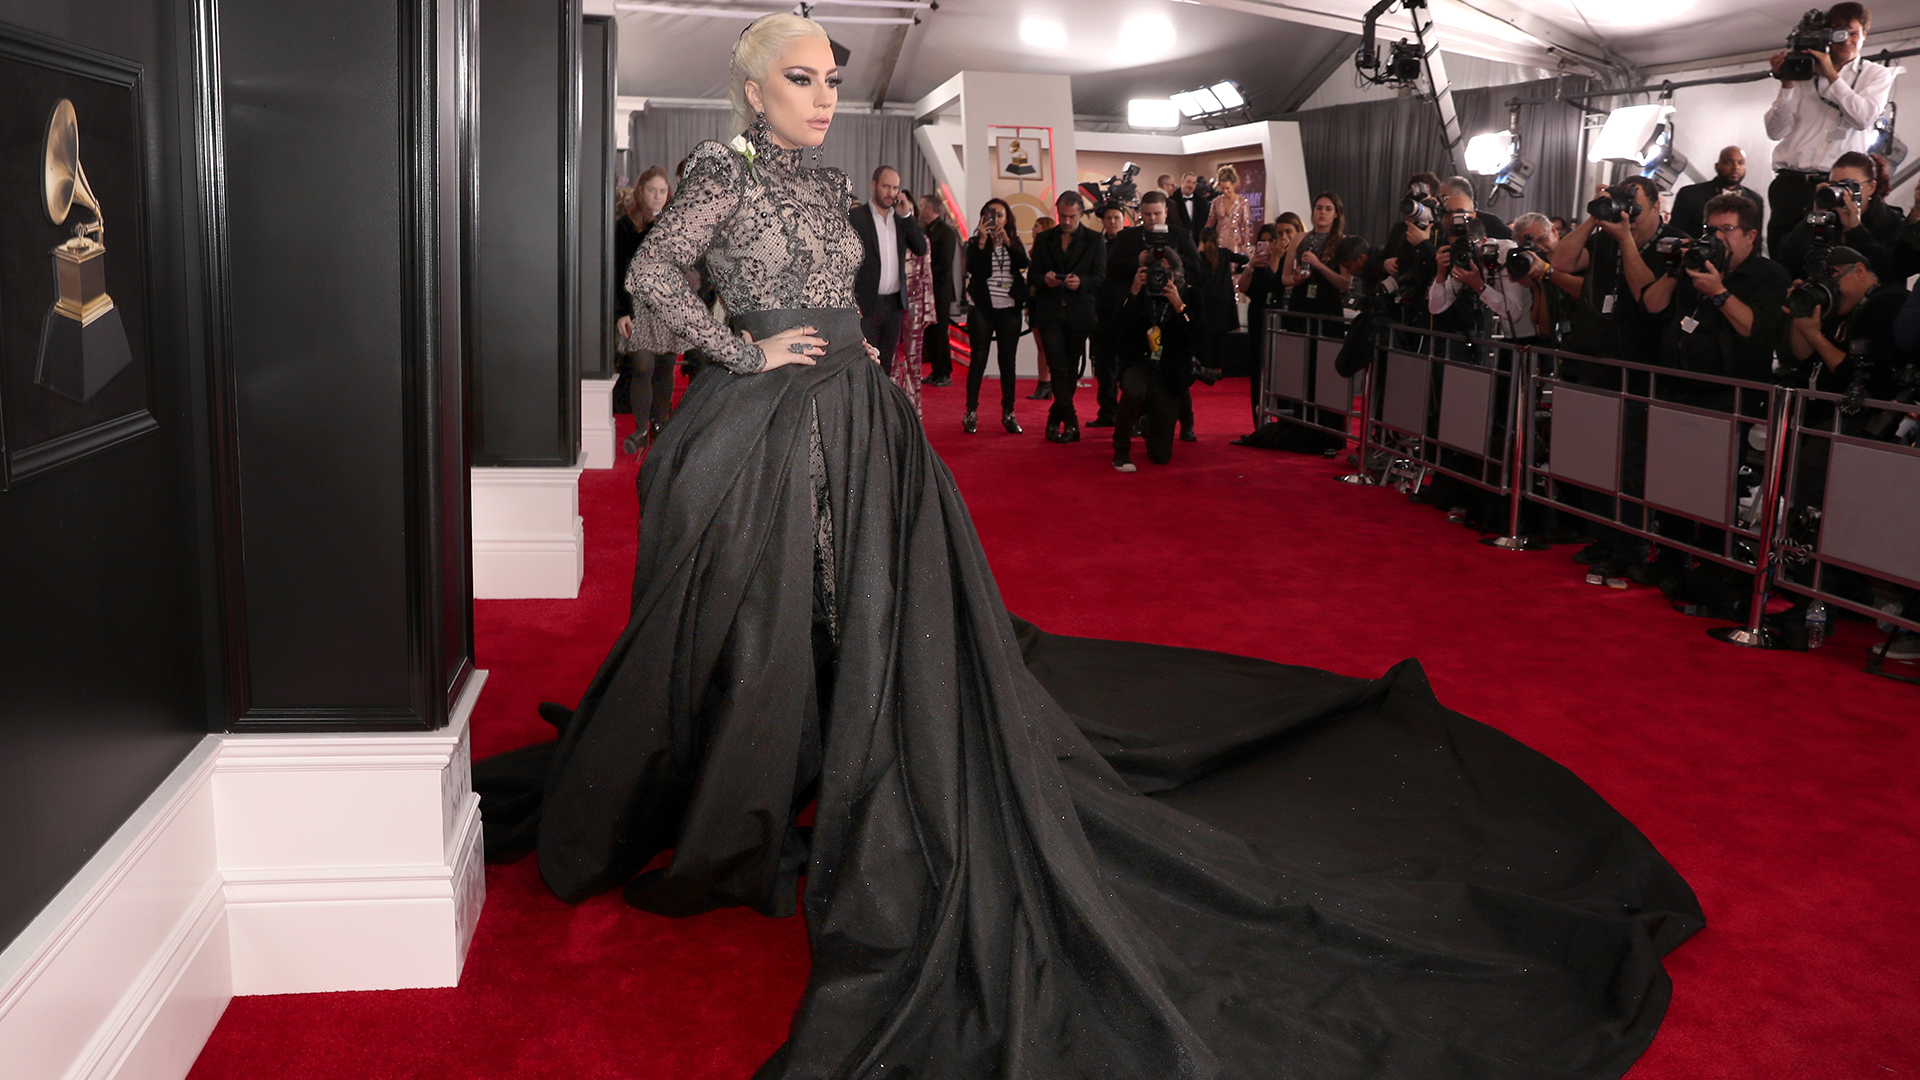 The Most Fashionable Red Carpet Looks from the 2018 Grammy Awards